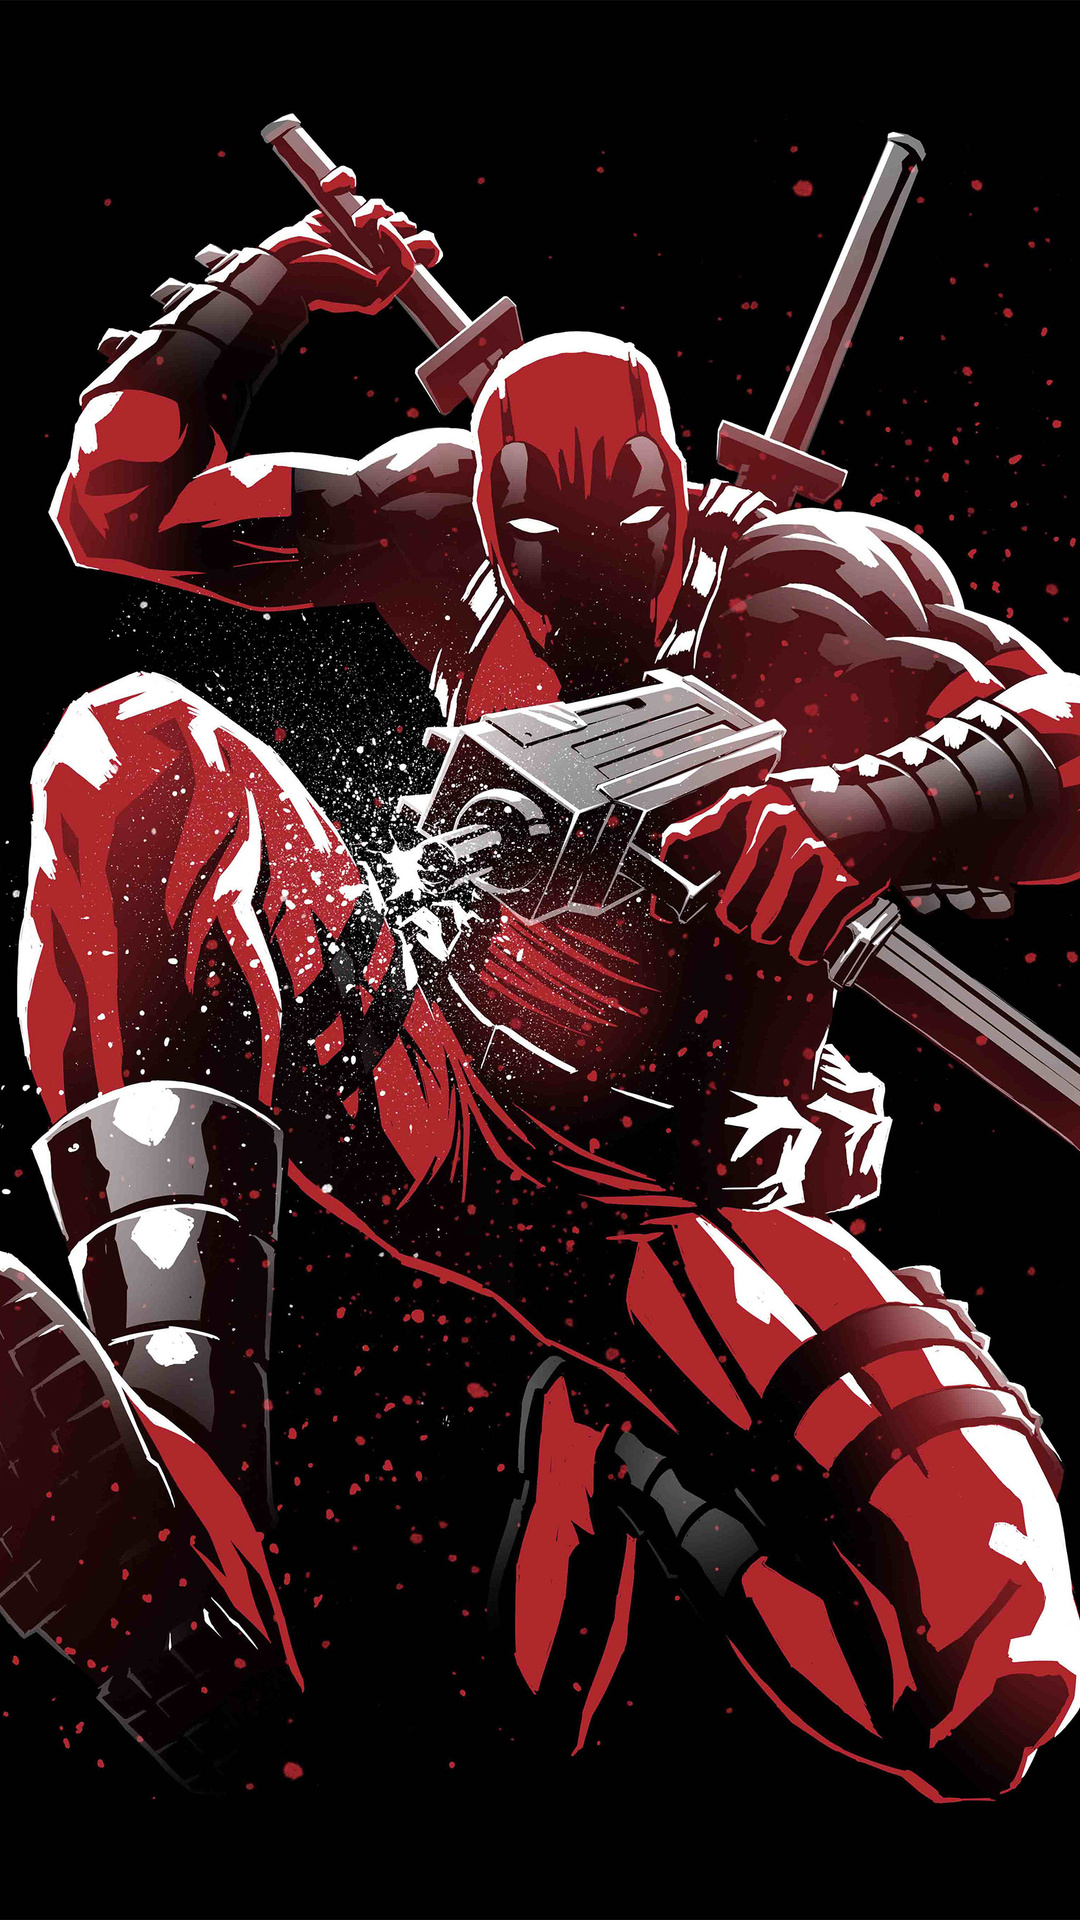 deadpool-5k-artwork-fq.jpg